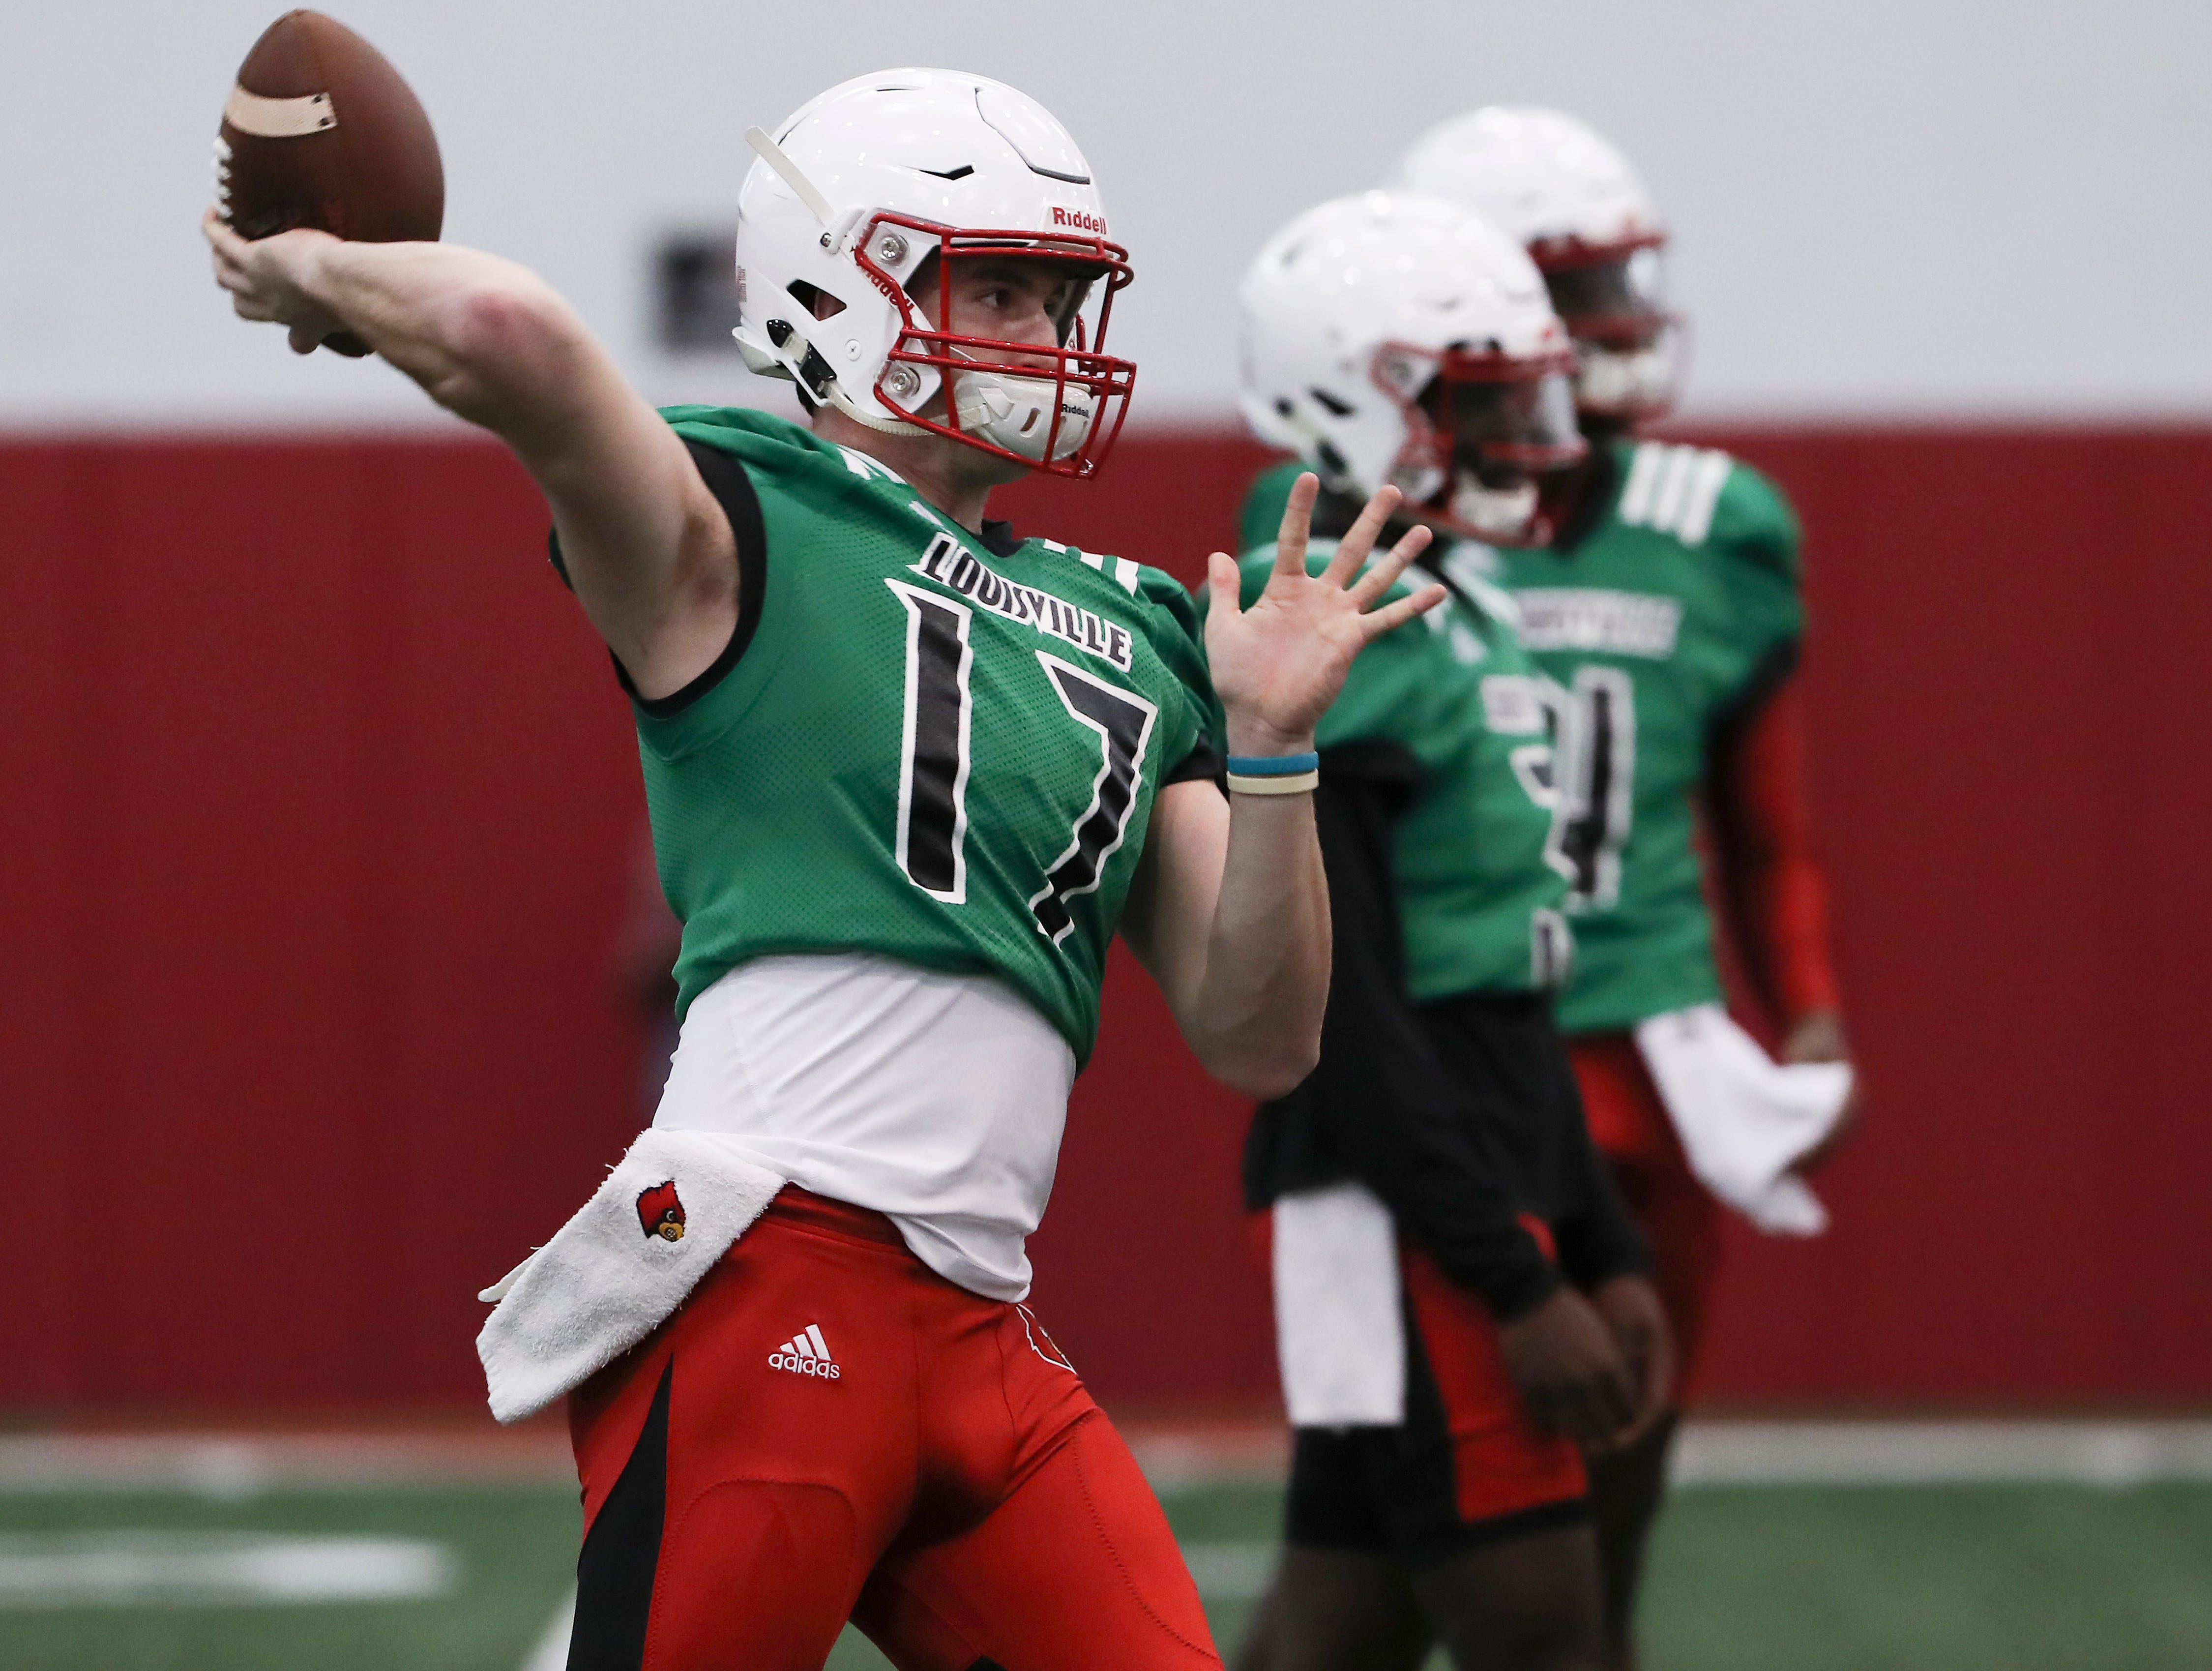 U of L QB Drew Zaubi (17) performs a pass drill during practice at the Trager Center.